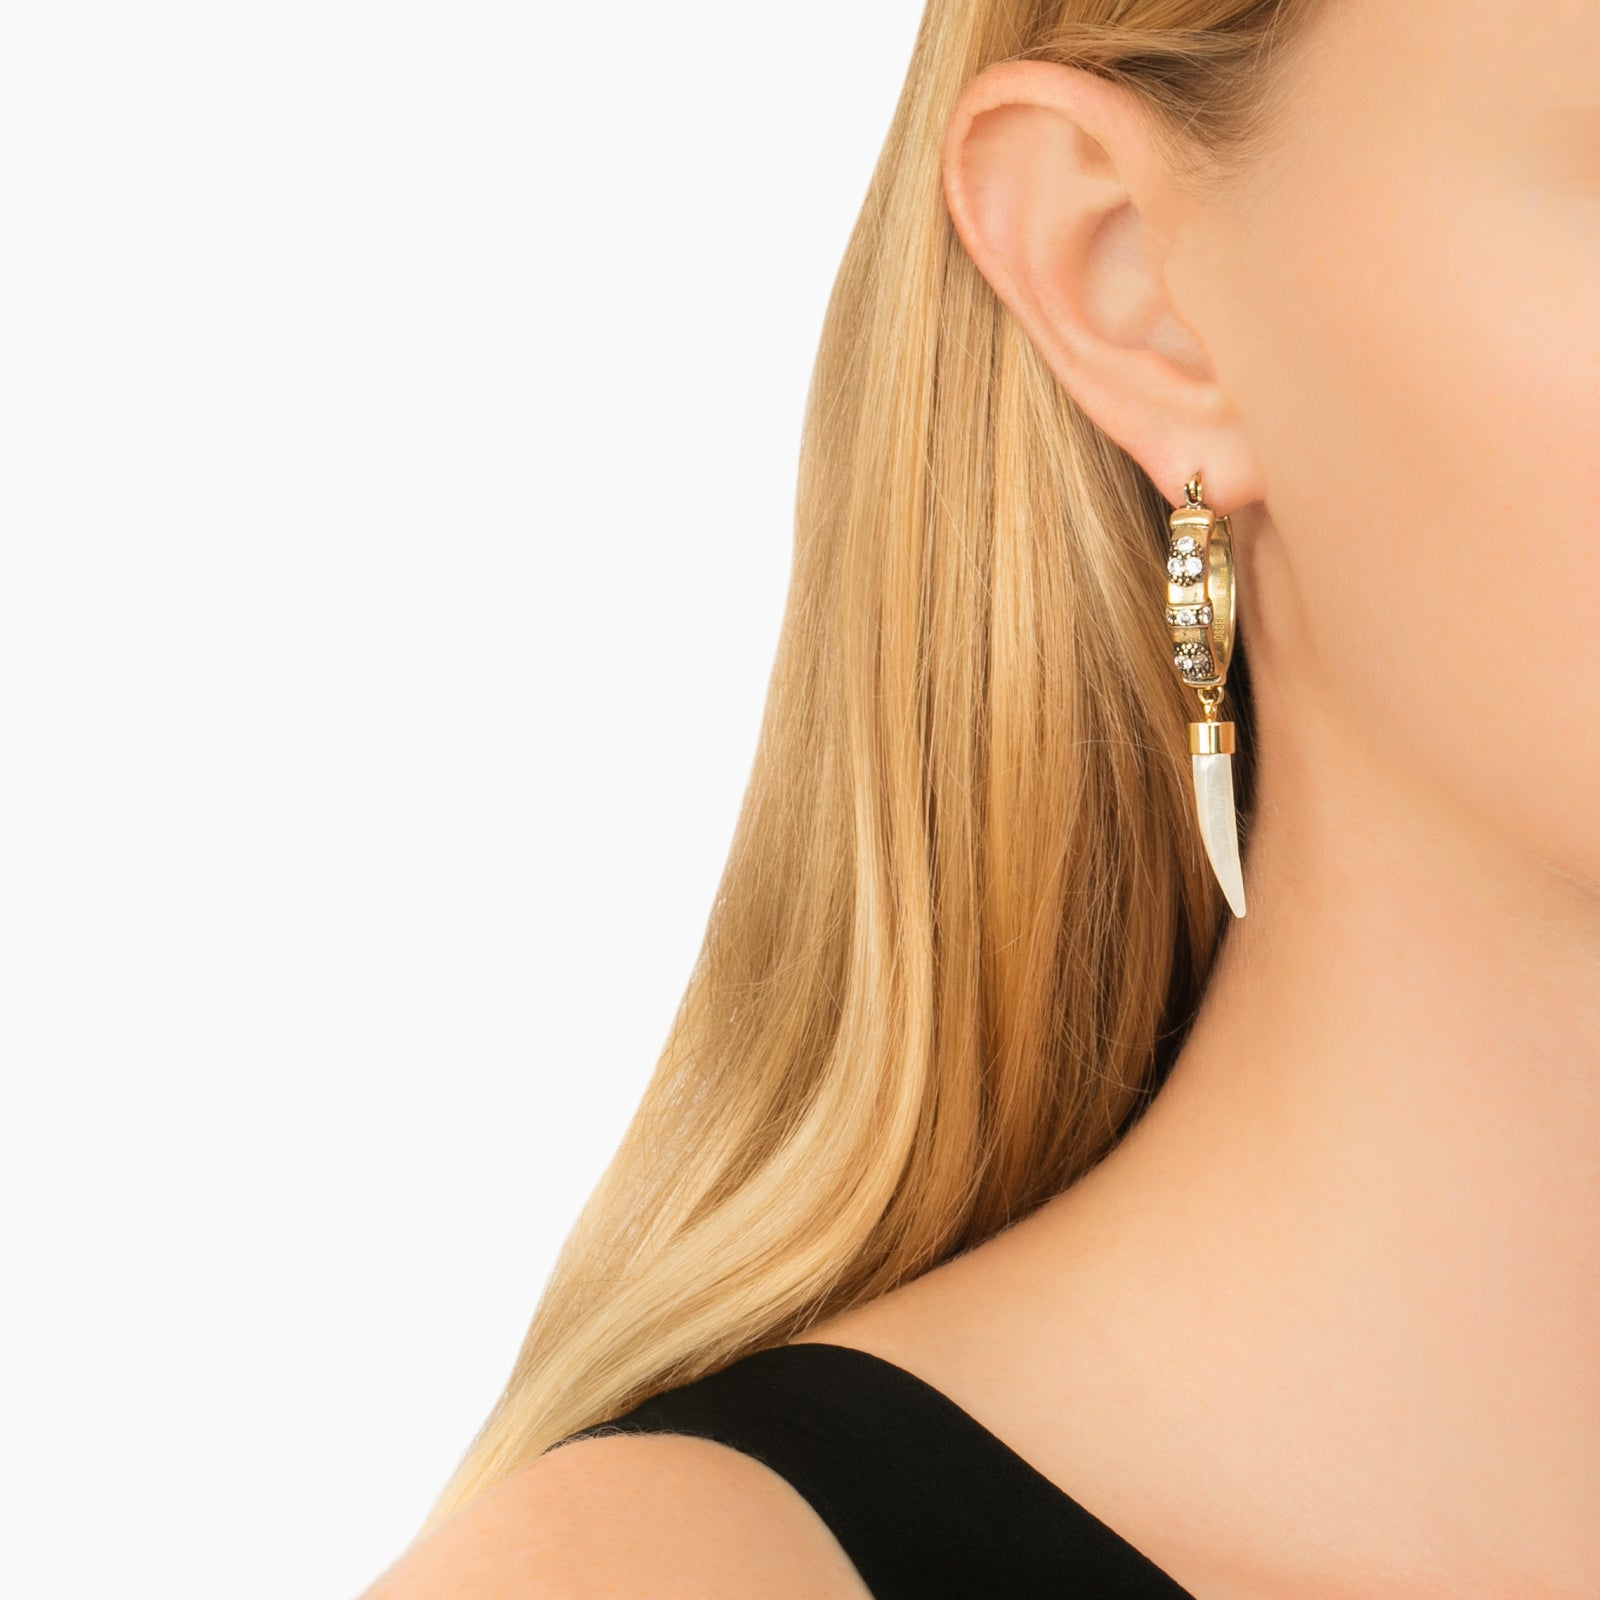 Hoop with Shell - Ioselliani - Earrings | Broken English Jewelry